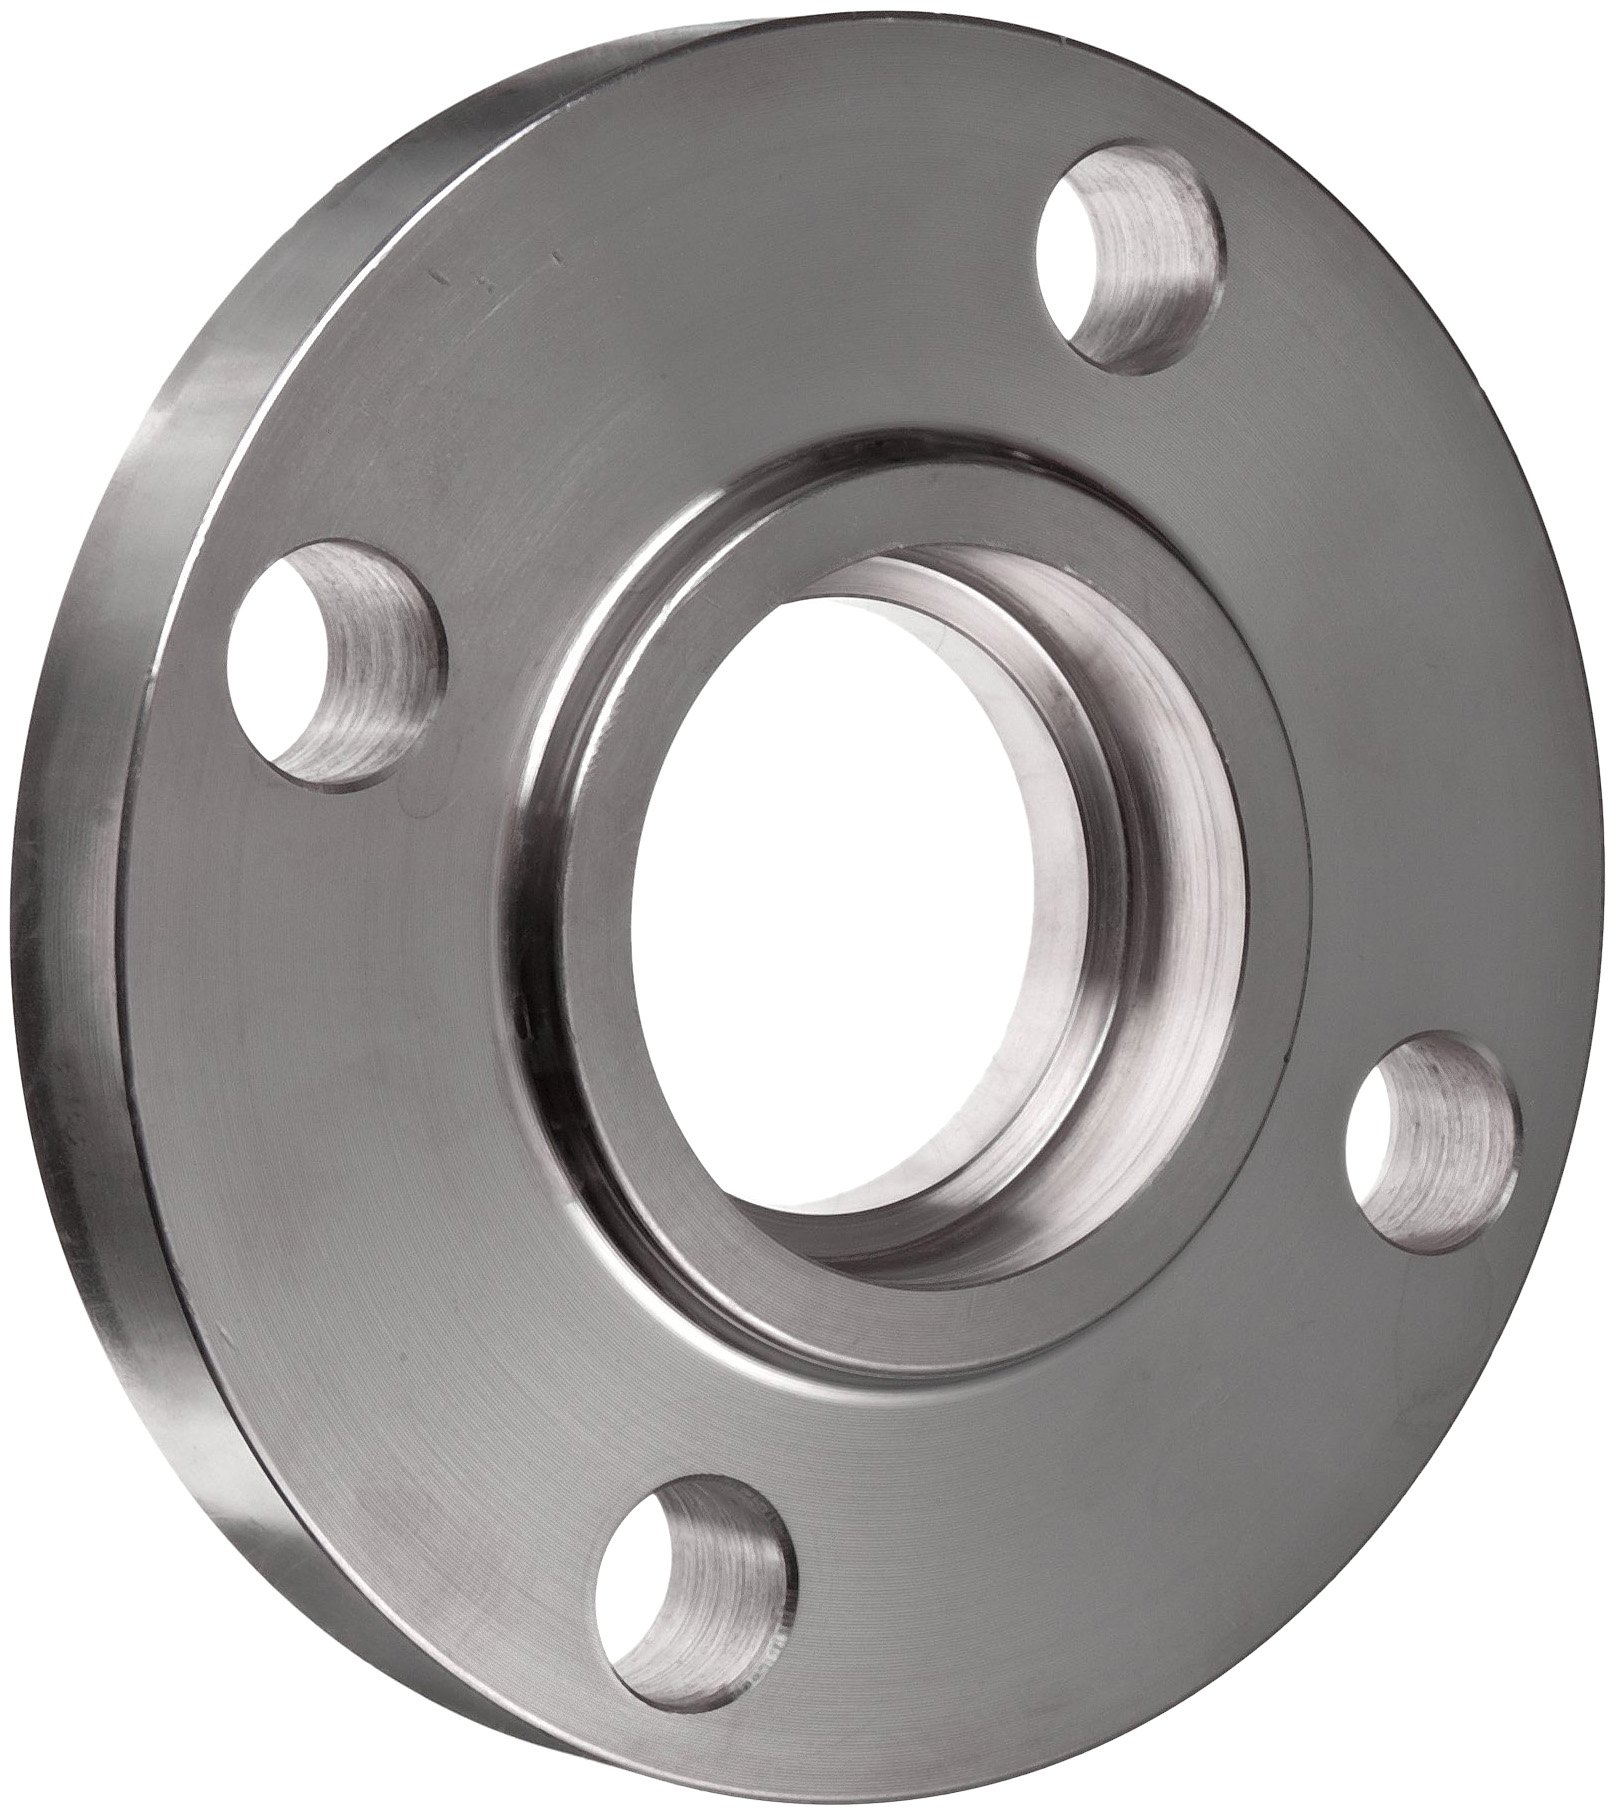 Stainless Steel 316/316L Pipe Fitting, Flange, Socket Weld, Class 150, 4'' Pipe Size